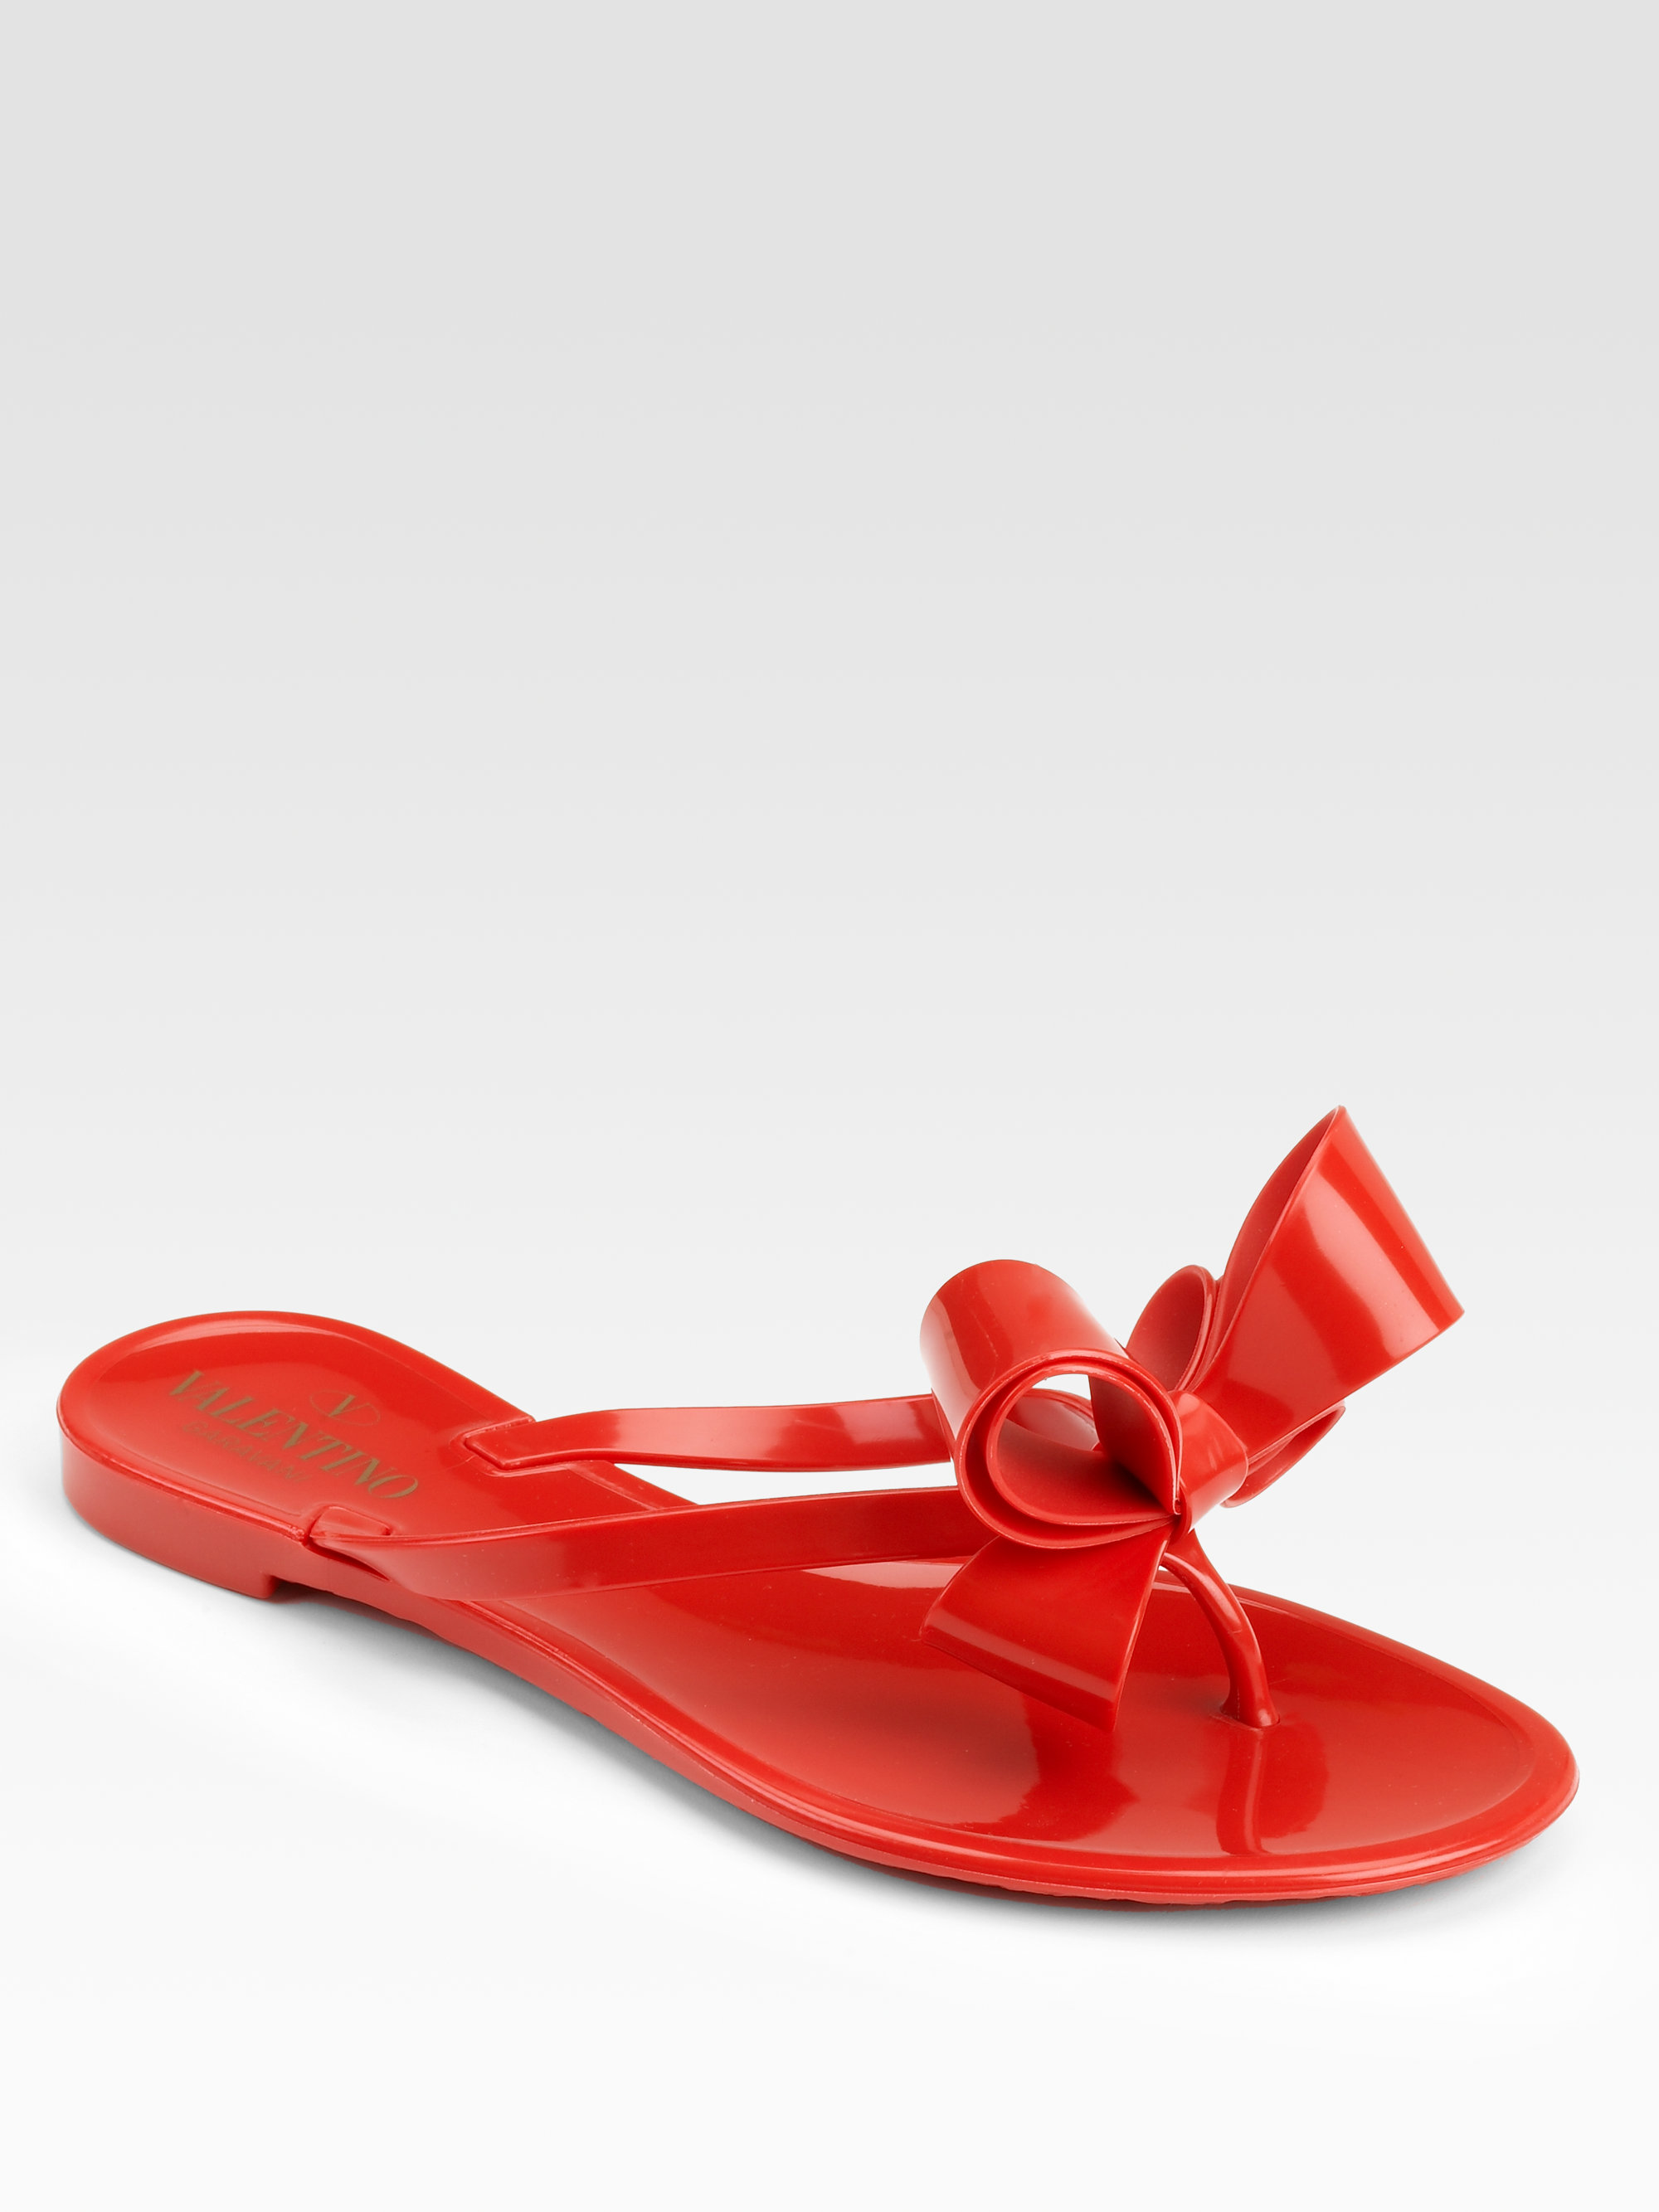 3b7b03930ff96 Lyst - Valentino Couture Bow Jelly Thong Sandals in Red